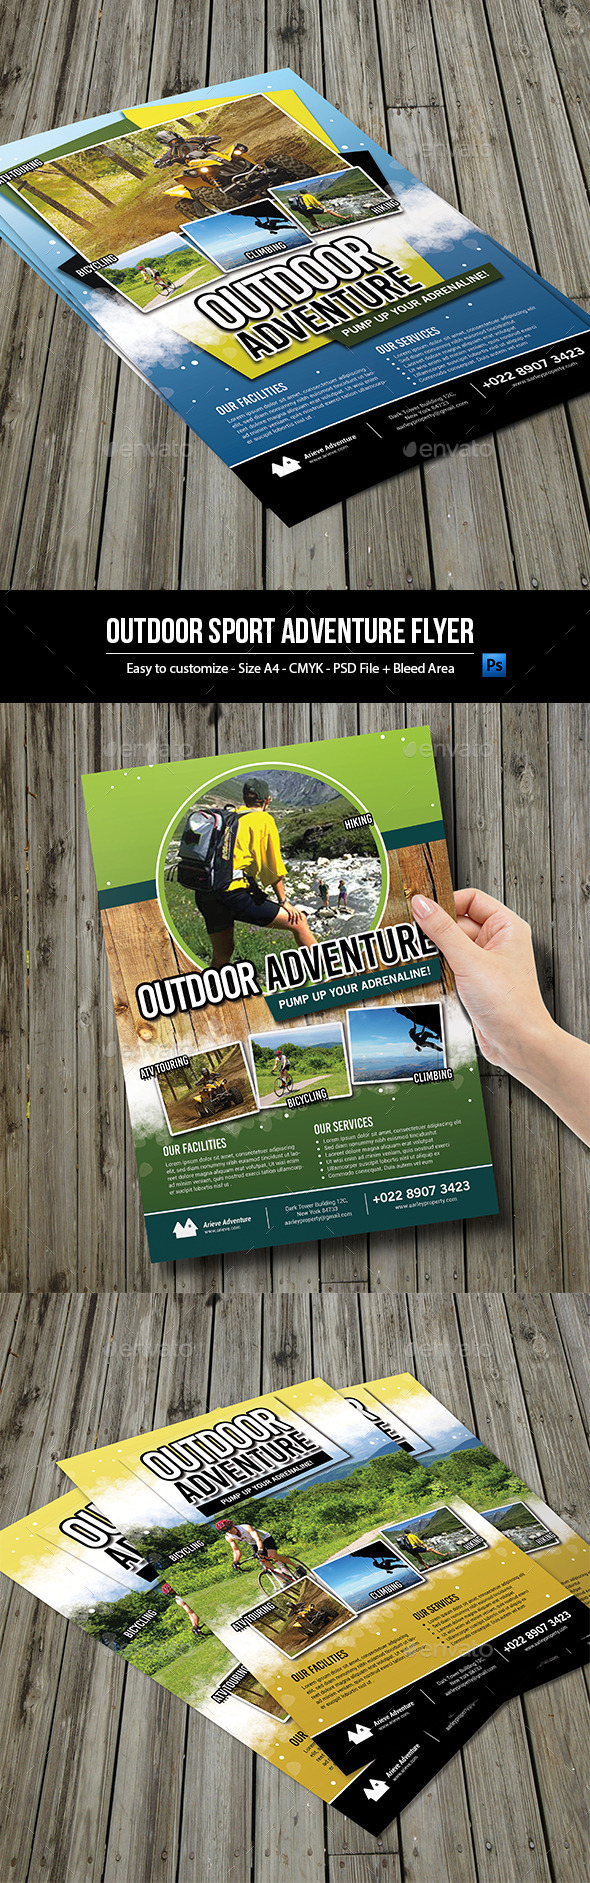 GraphicRiver Outdoor Sport Adventure Flyer 9953975